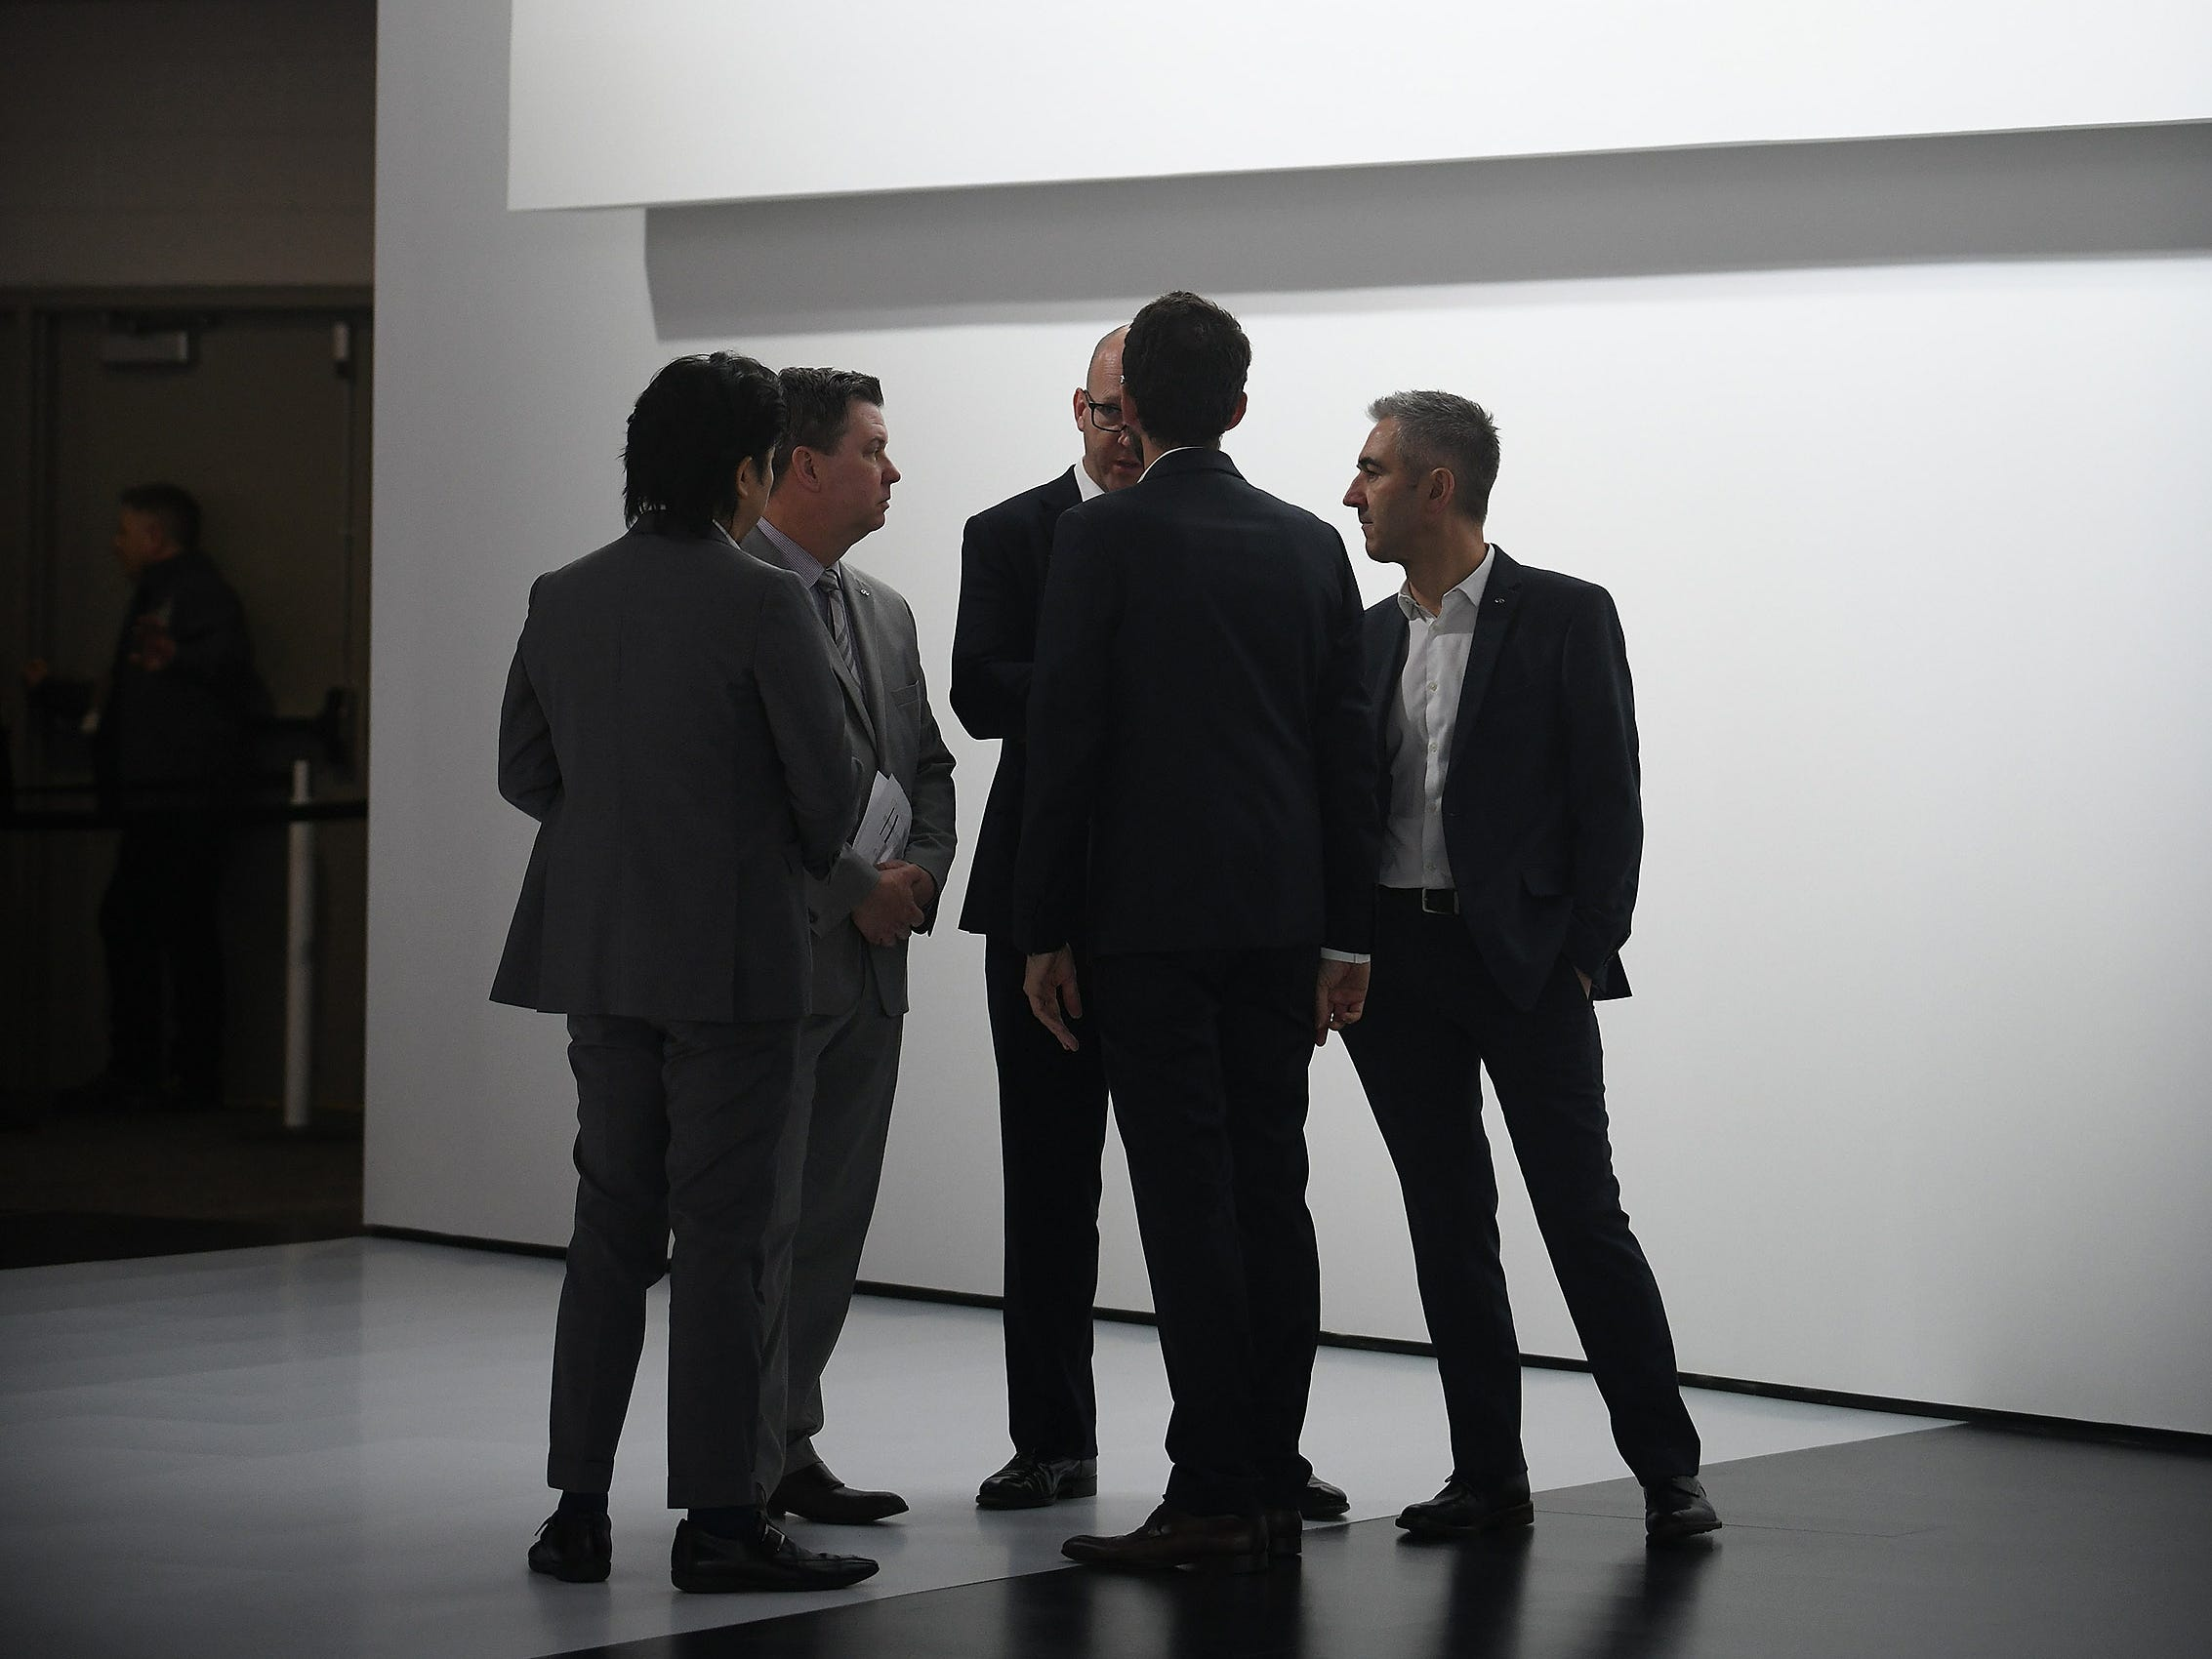 Executives from Infiniti gather and talk after the press event.